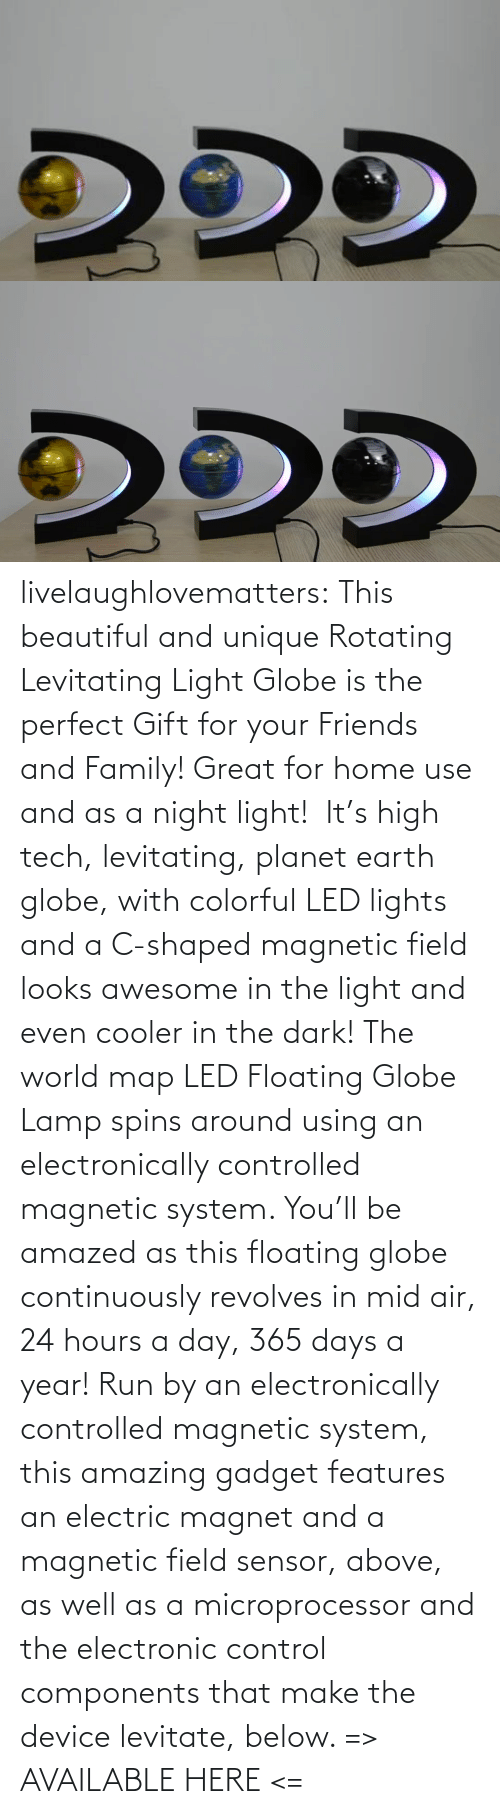 planet: livelaughlovematters: This beautiful and unique Rotating Levitating Light Globe is the perfect Gift for your Friends and Family! Great for home use and as a night light!  It's high tech, levitating, planet earth globe, with colorful LED lights and a C-shaped magnetic field looks awesome in the light and even cooler in the dark! The world map LED Floating Globe Lamp spins around using an electronically controlled magnetic system.  You'll be amazed as this floating globe continuously revolves in mid air, 24 hours a day, 365 days a year! Run by an electronically controlled magnetic system, this amazing gadget features an electric magnet and a magnetic field sensor, above, as well as a microprocessor and the electronic control components that make the device levitate, below.  => AVAILABLE HERE <=